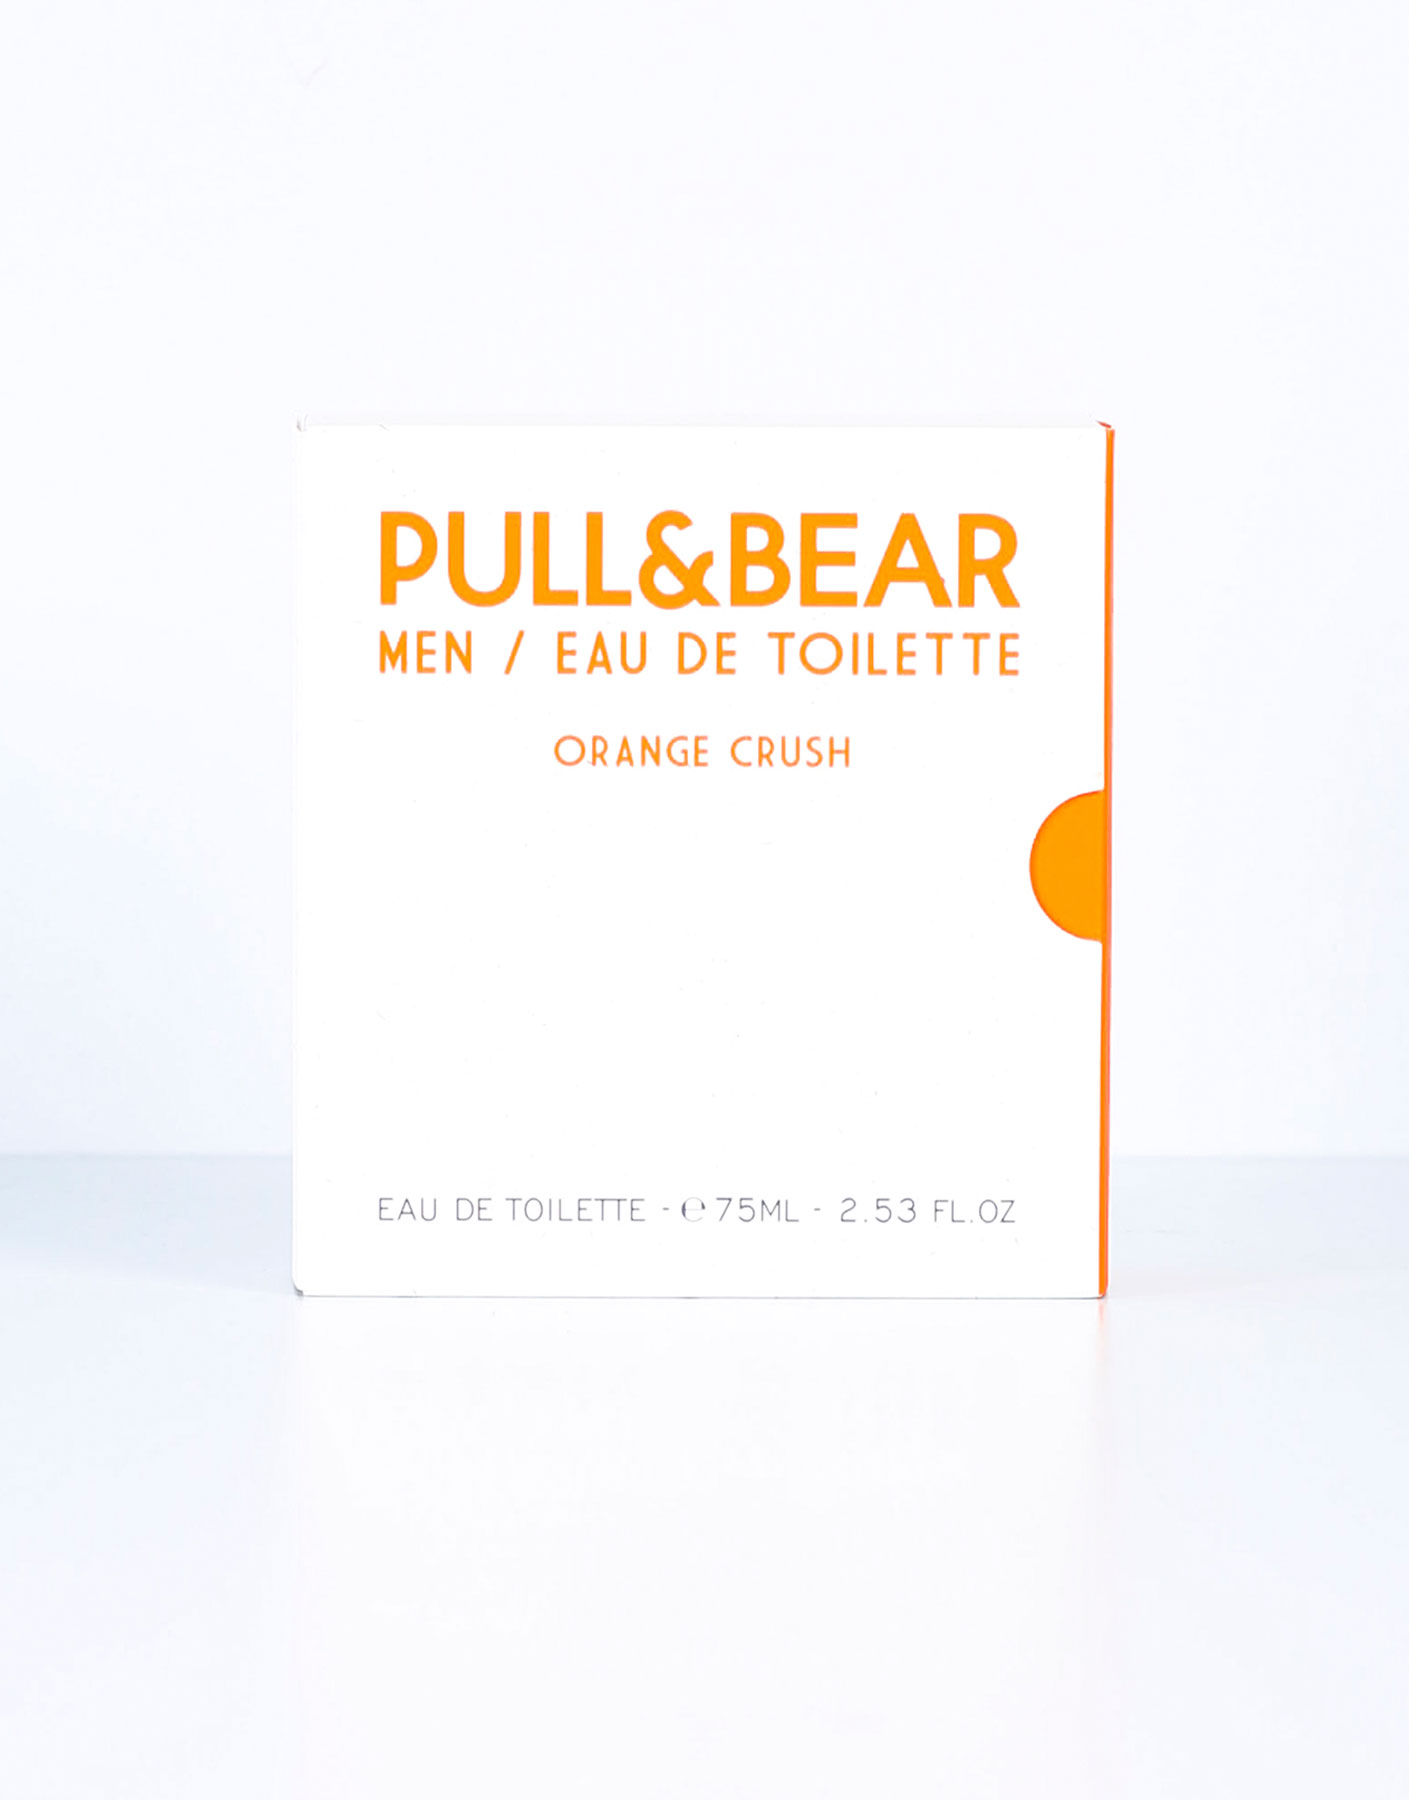 Eau de toilette pull & bear orange crush 75 ml